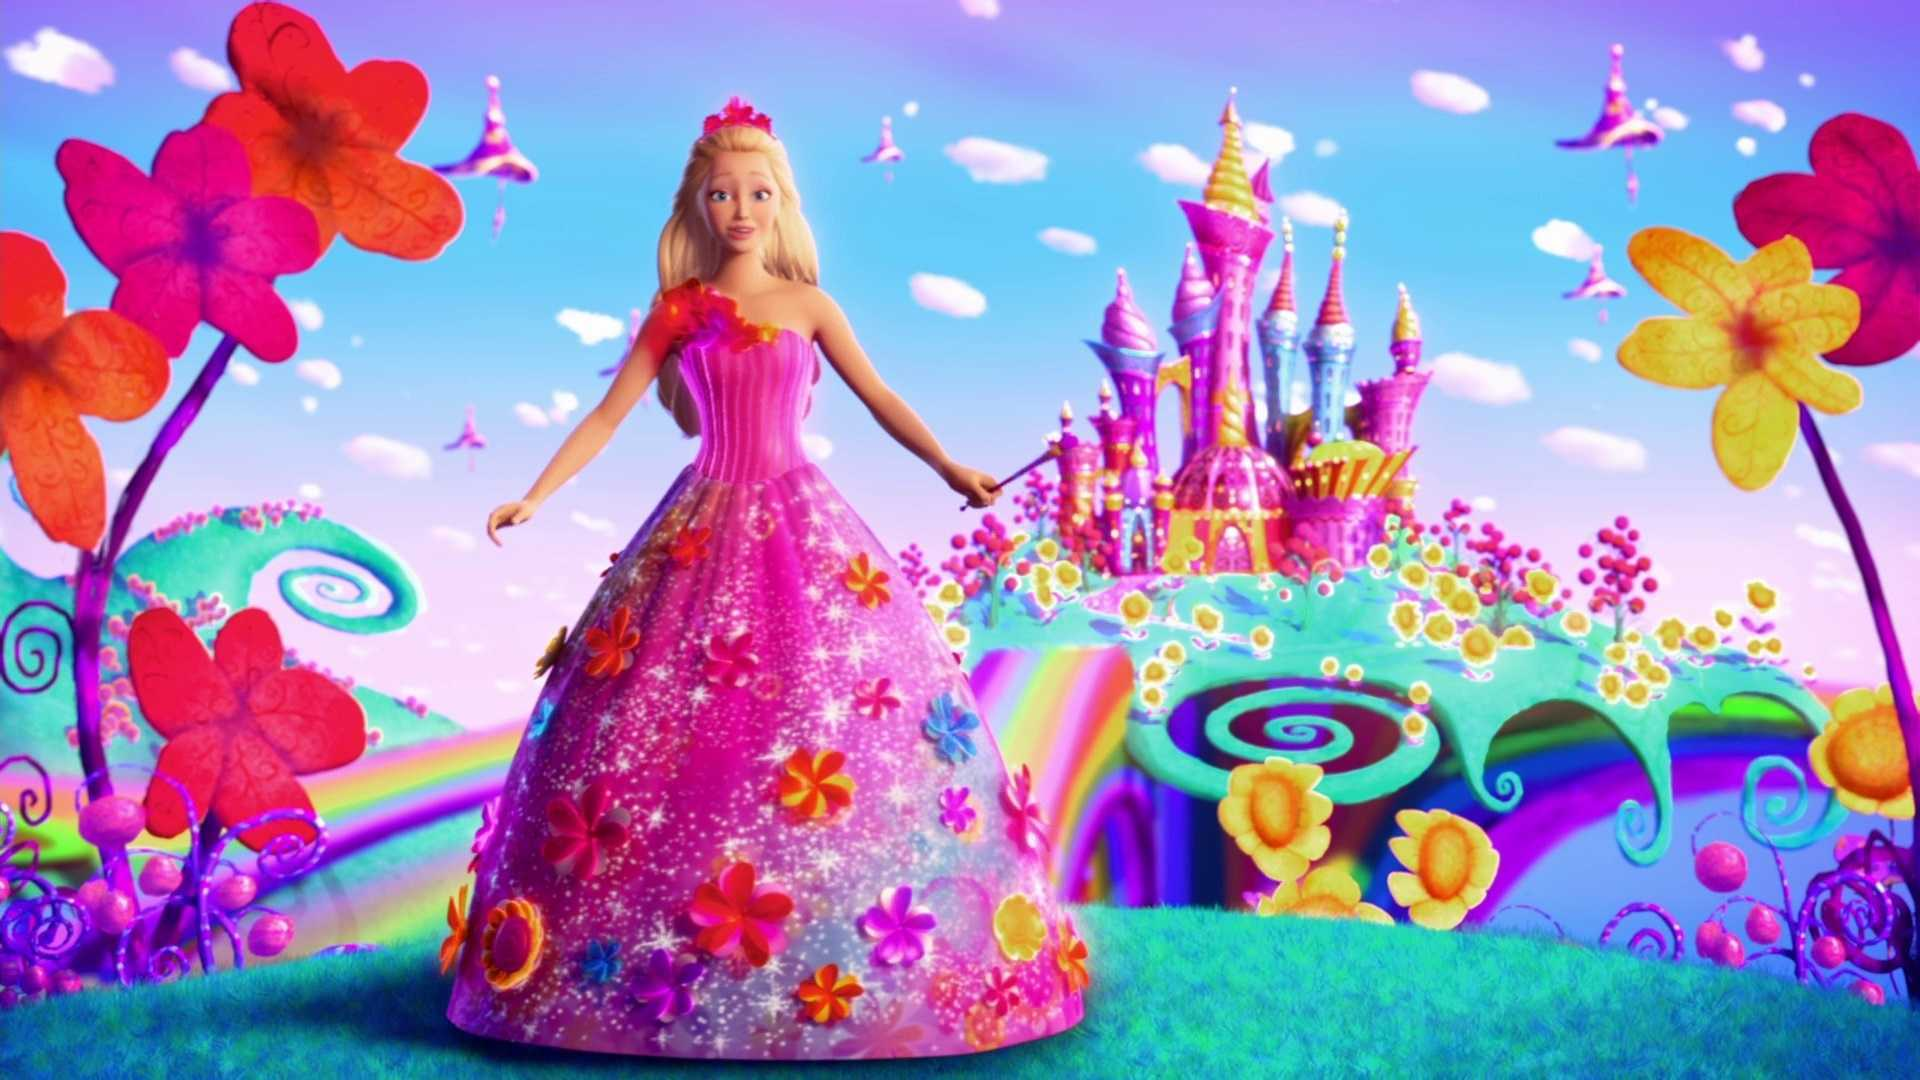 barbie wallpapers 2016 wallpaper cave